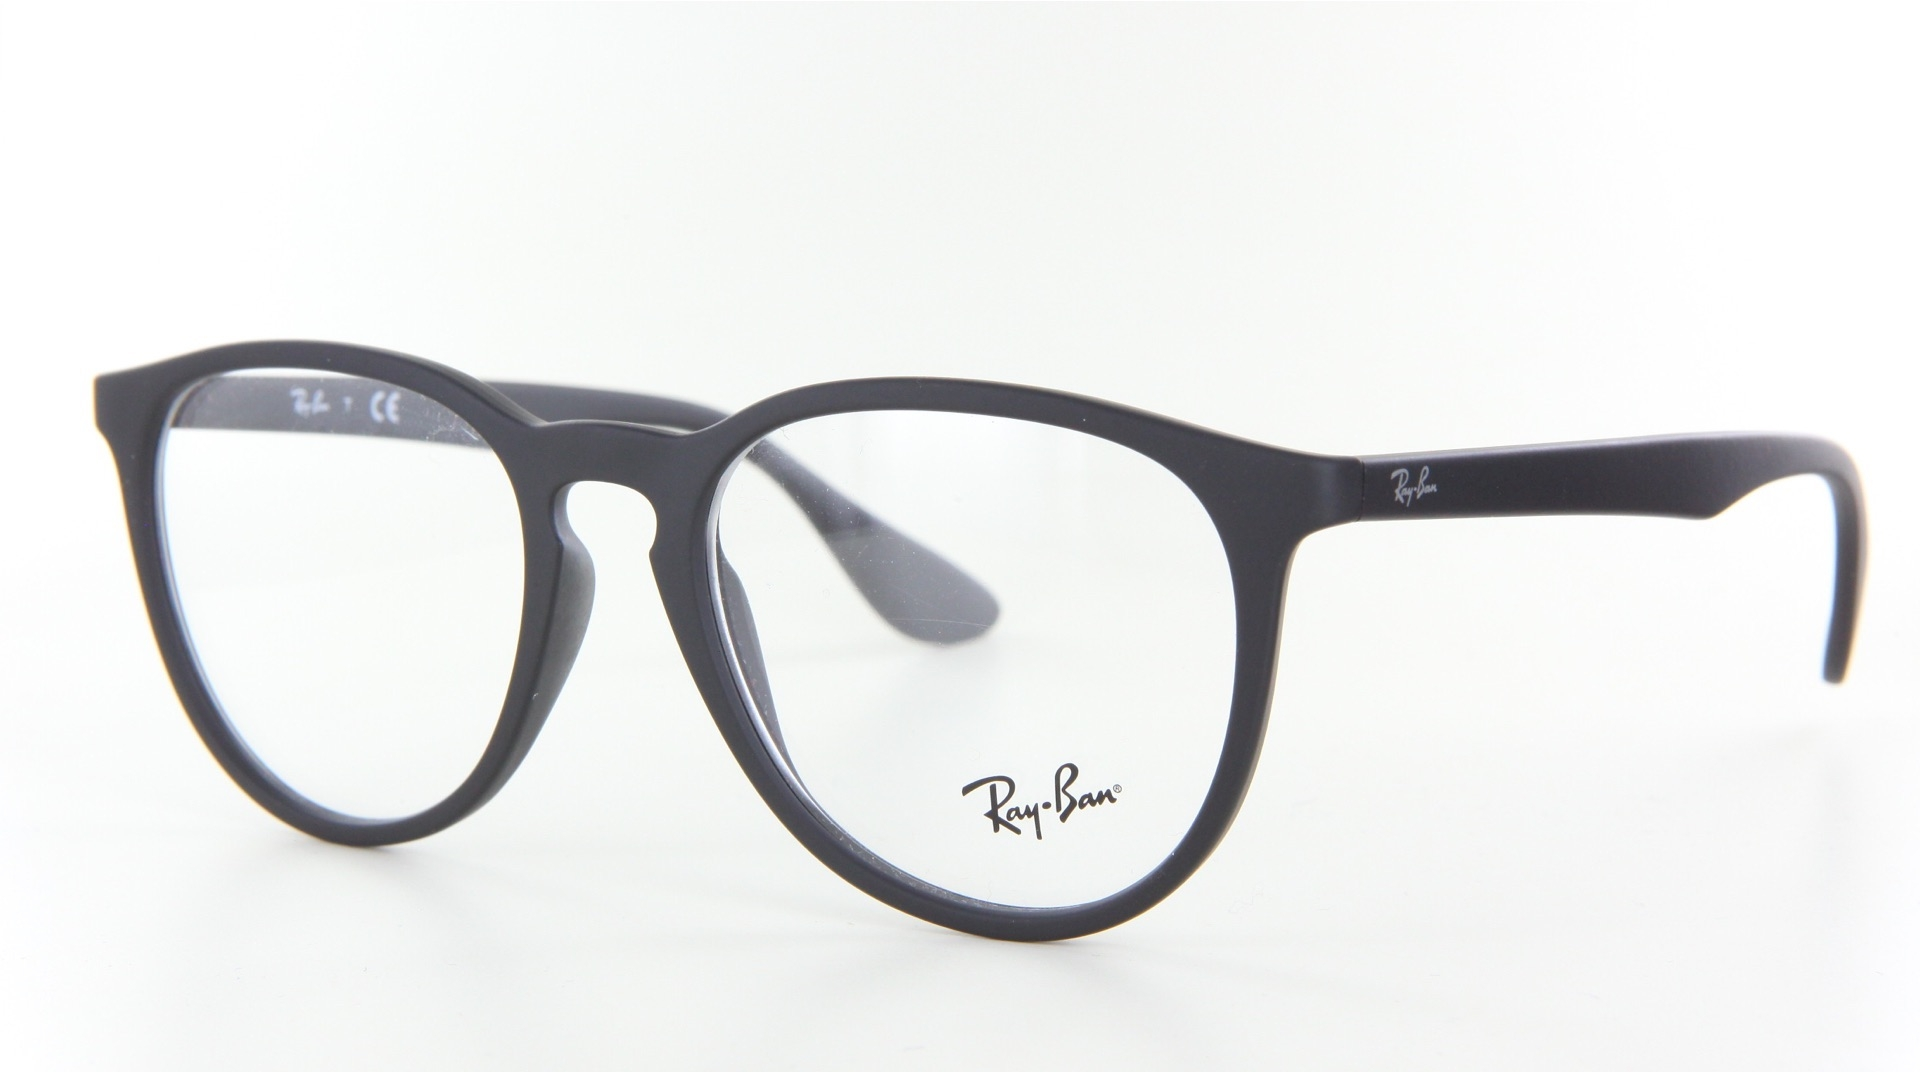 Ray-Ban - ref: 72939